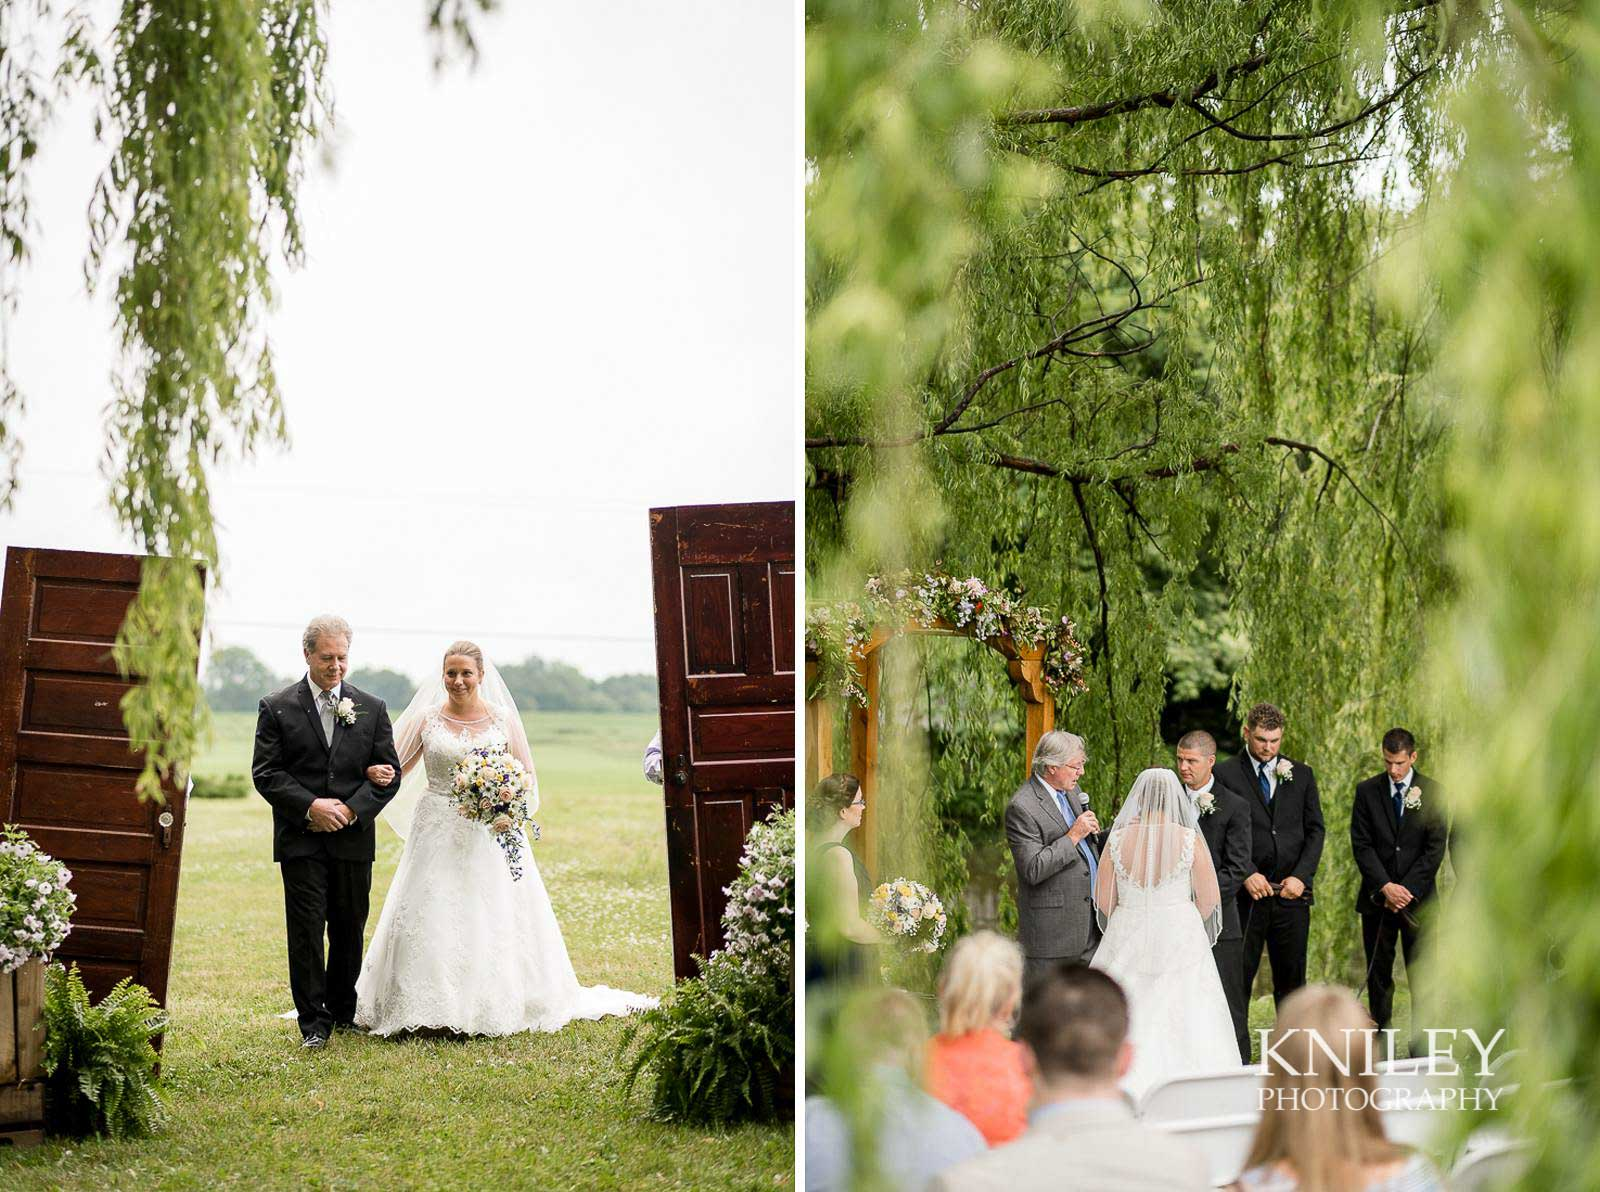 19-Jerris-Wadsworth-Wedding-Barn-Rochester-NY-Wedding-Photography.jpg